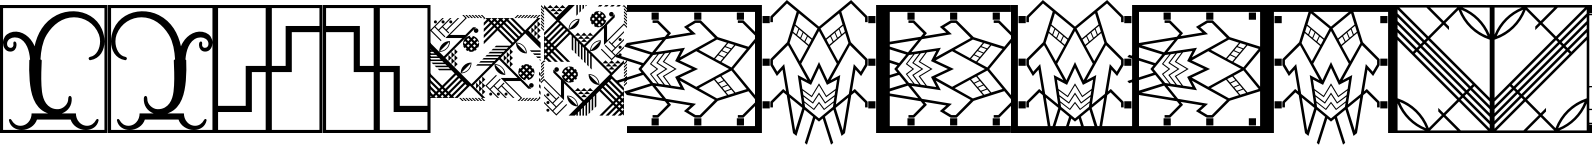 Ornamental Deco 2D Borders